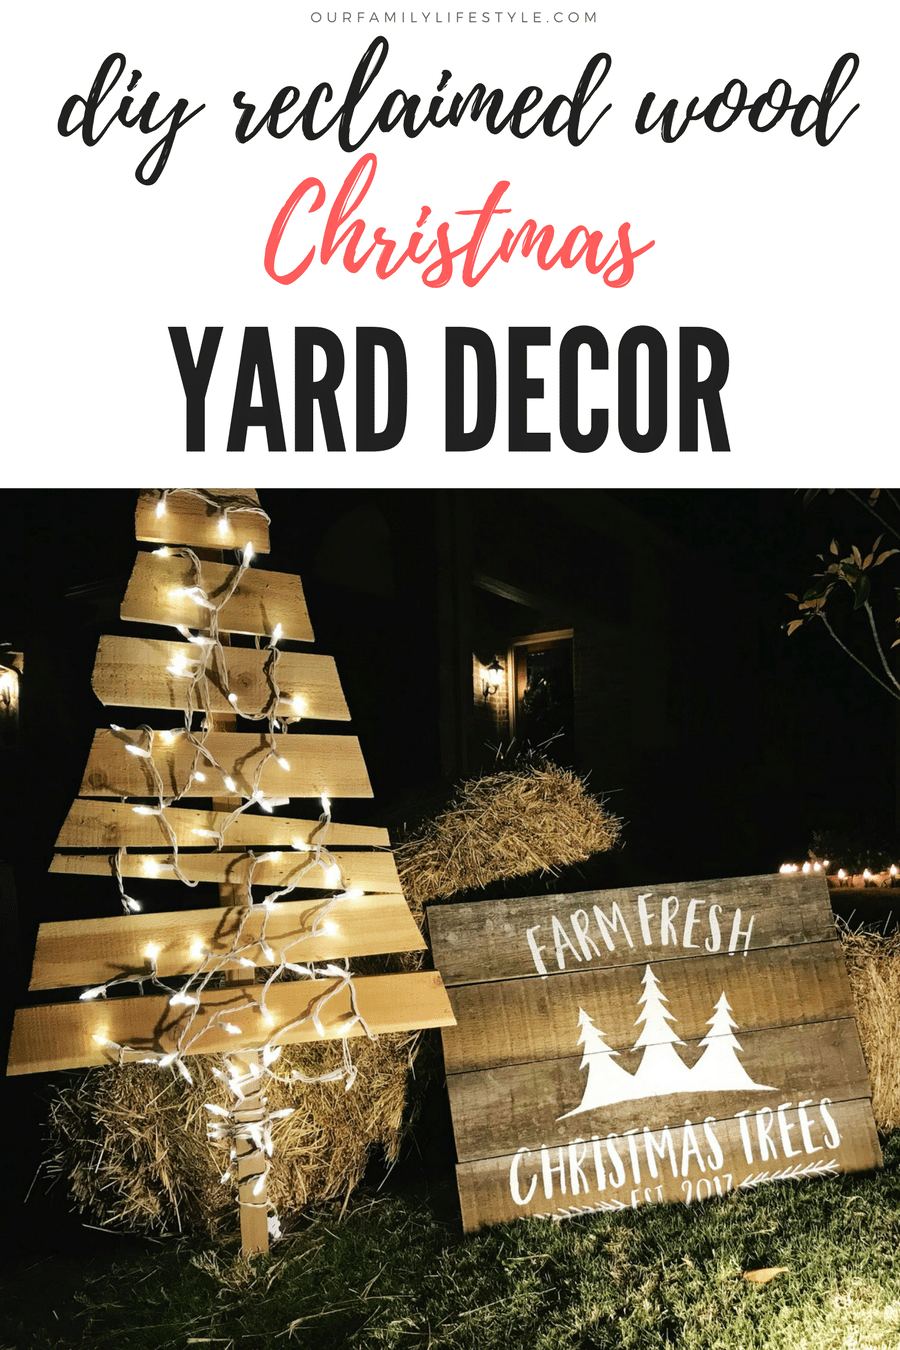 DIY Reclaimed Wood Christmas Yard Decor. Using a couple of old fence pickets, my Cricut, and some chalk paint, we created a reclaimed wooden sign for our front yard Christmas Tree Farm display.